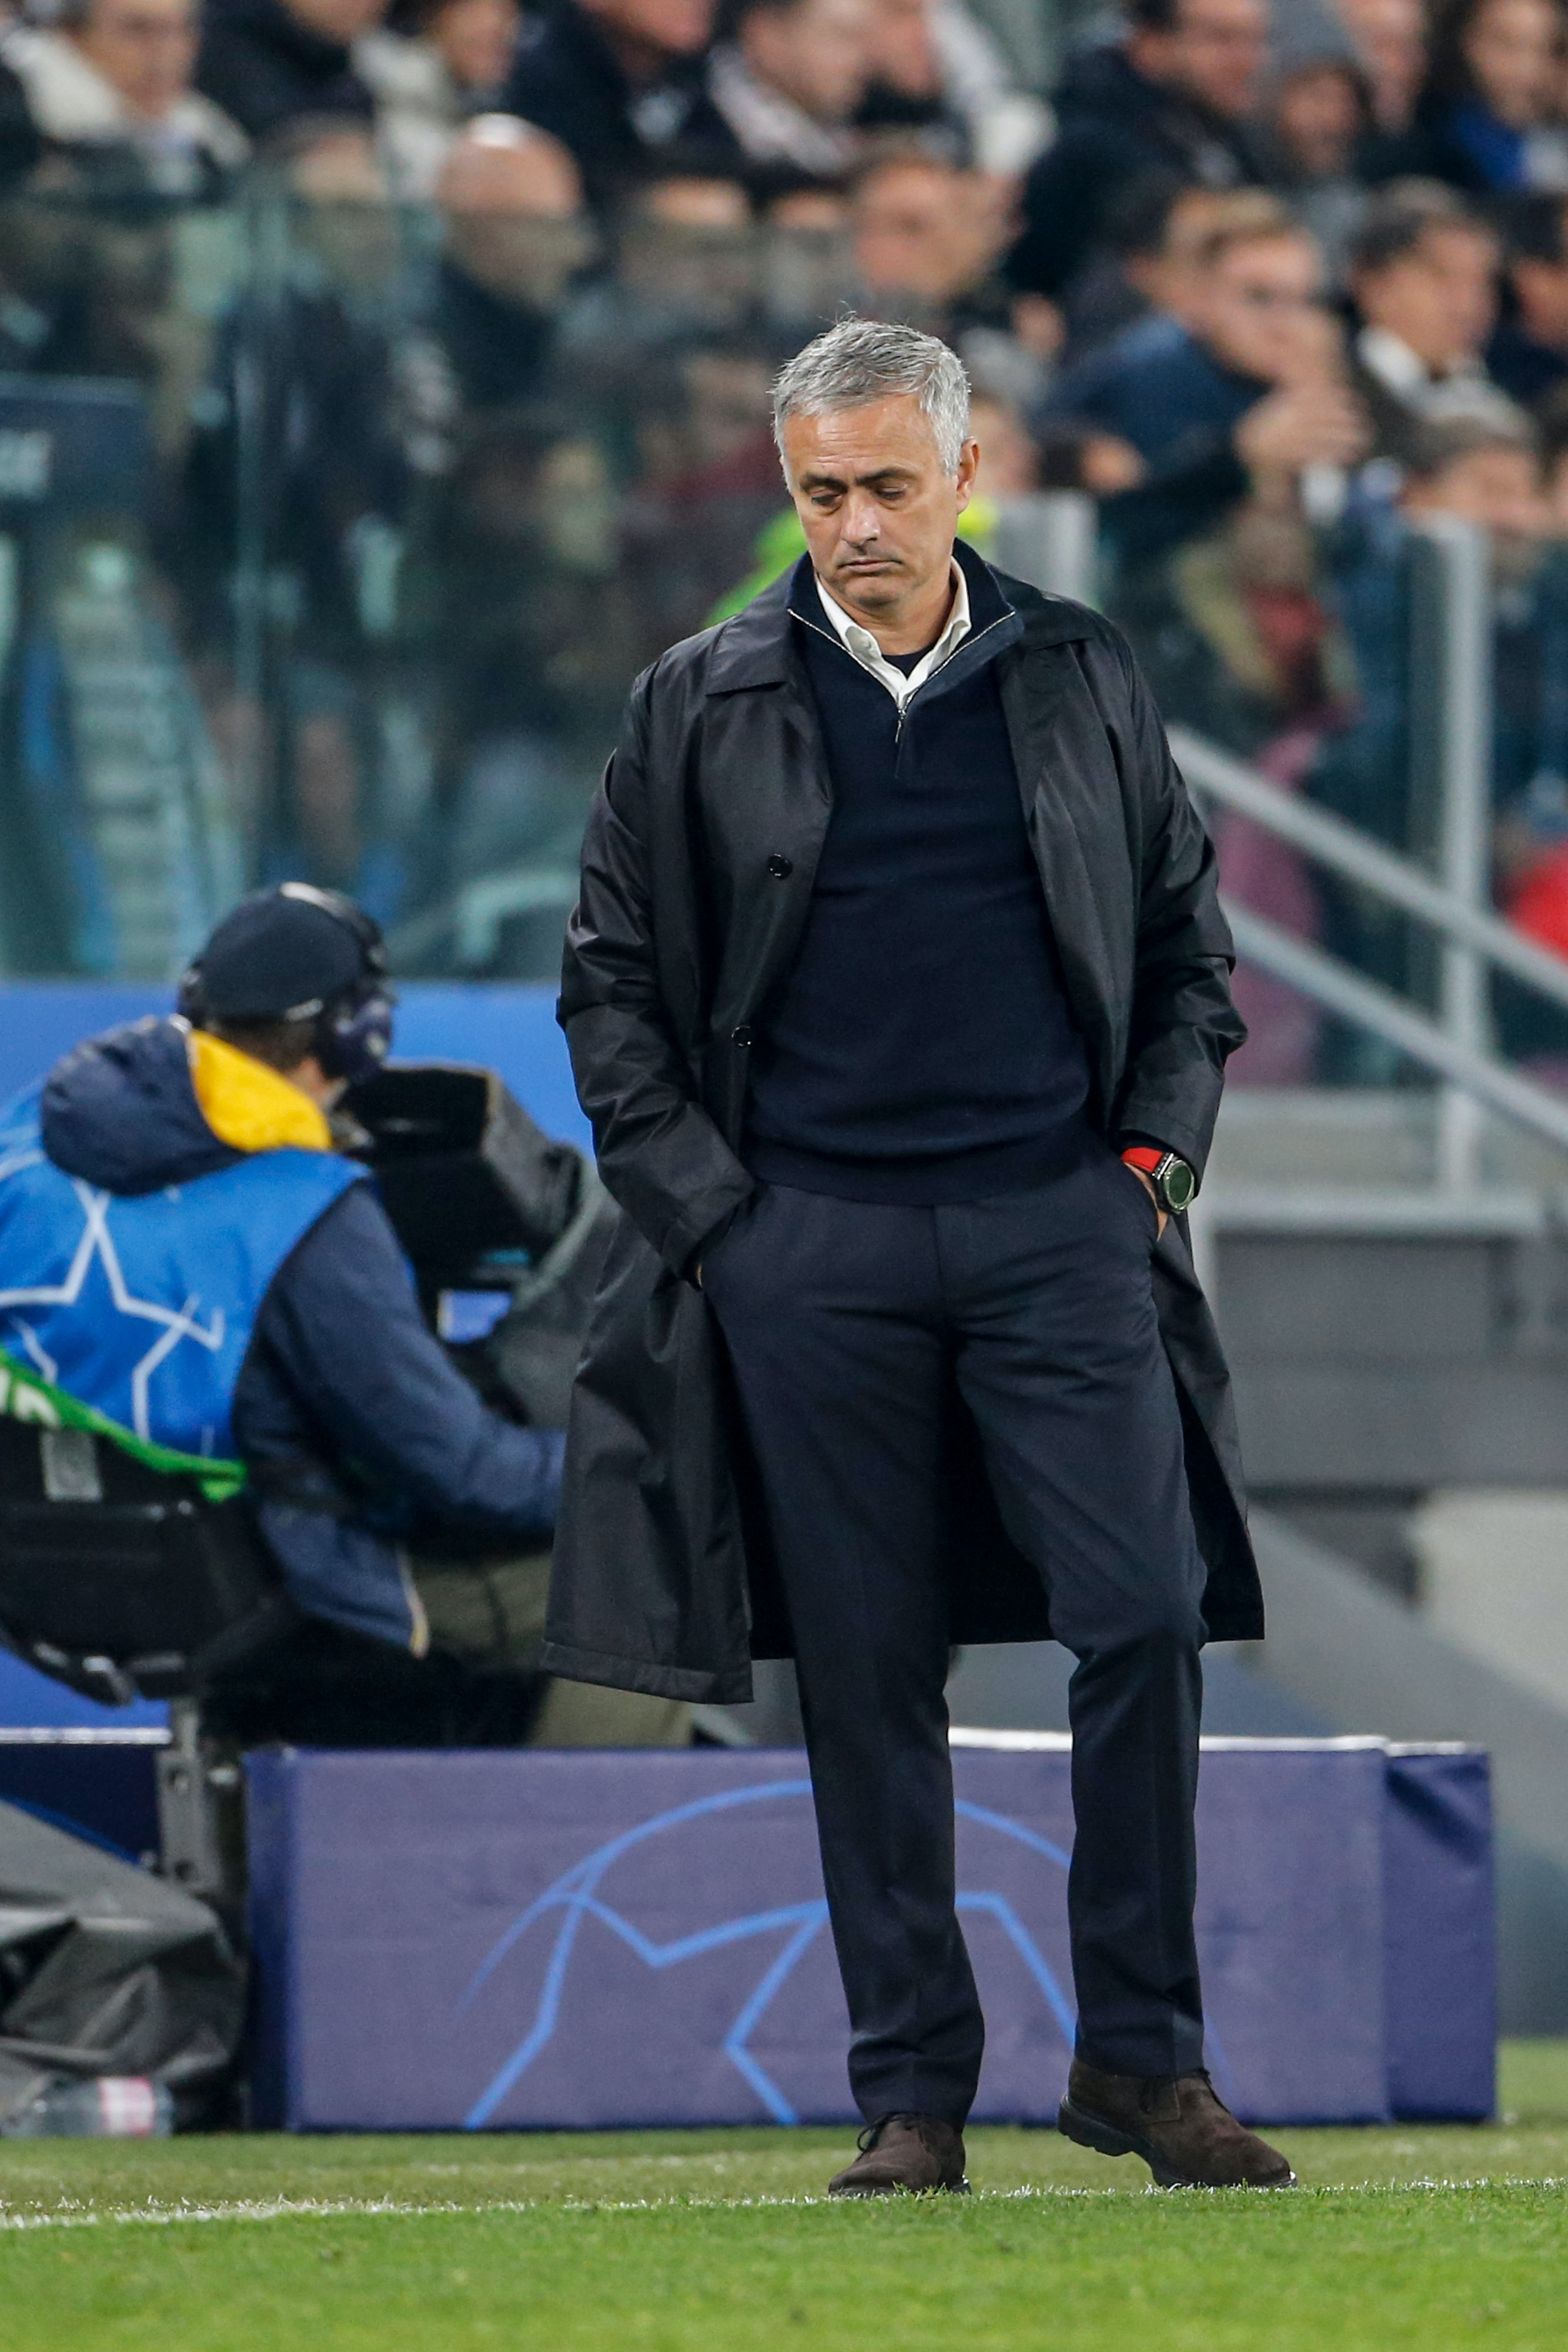 It's not about him: leading lessons from Manchester United's caretaker manager